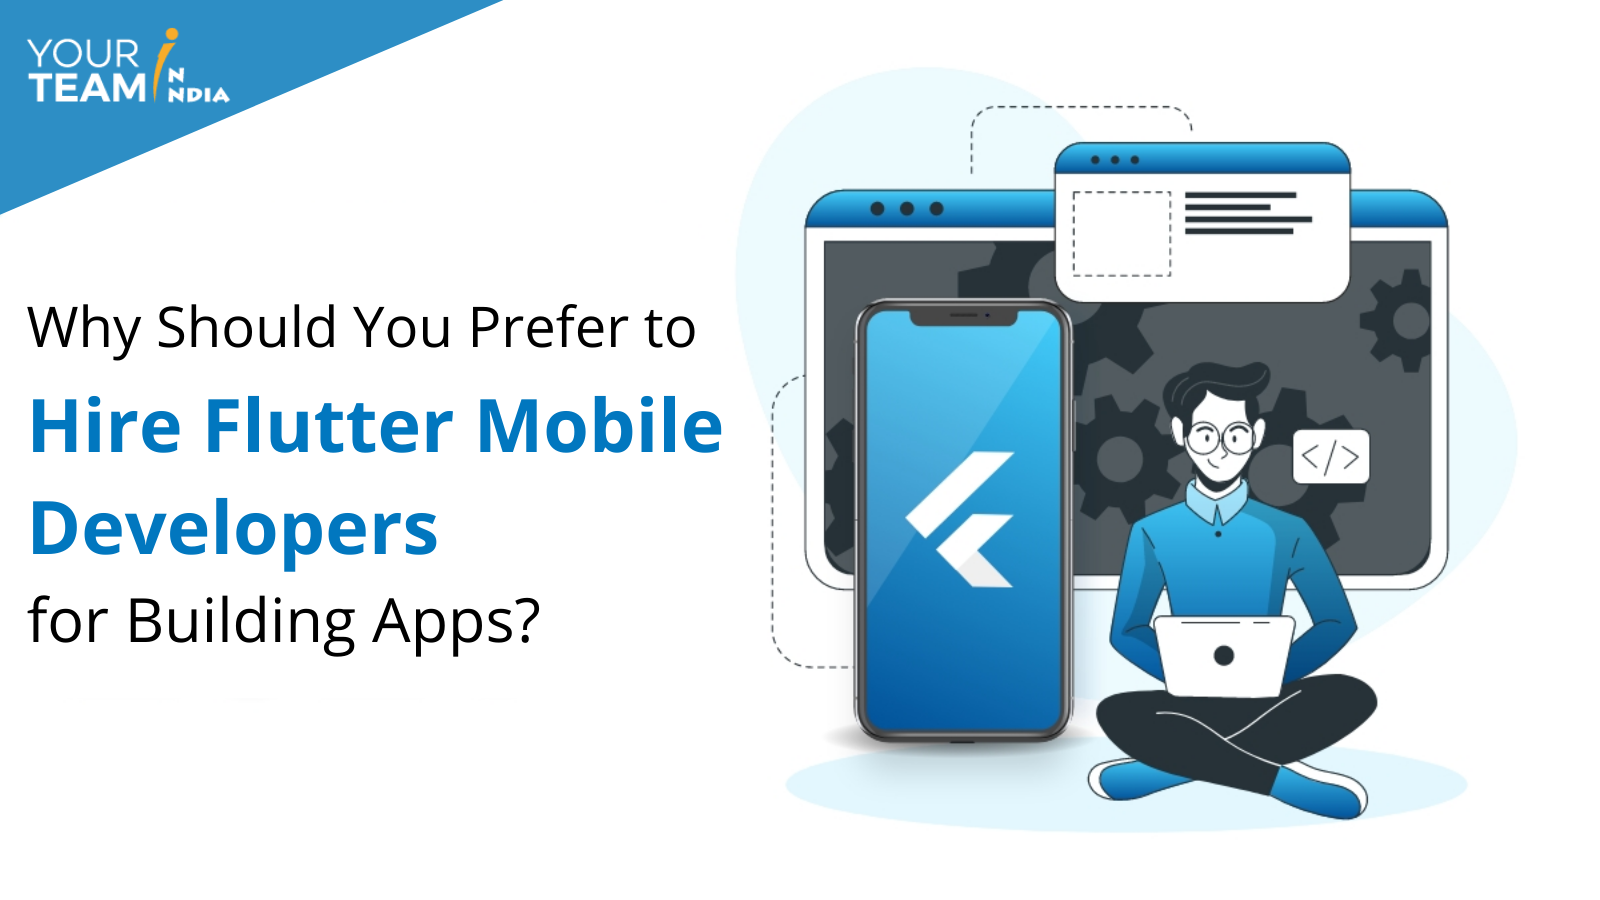 Why Should You Prefer to Hire Flutter Mobi...